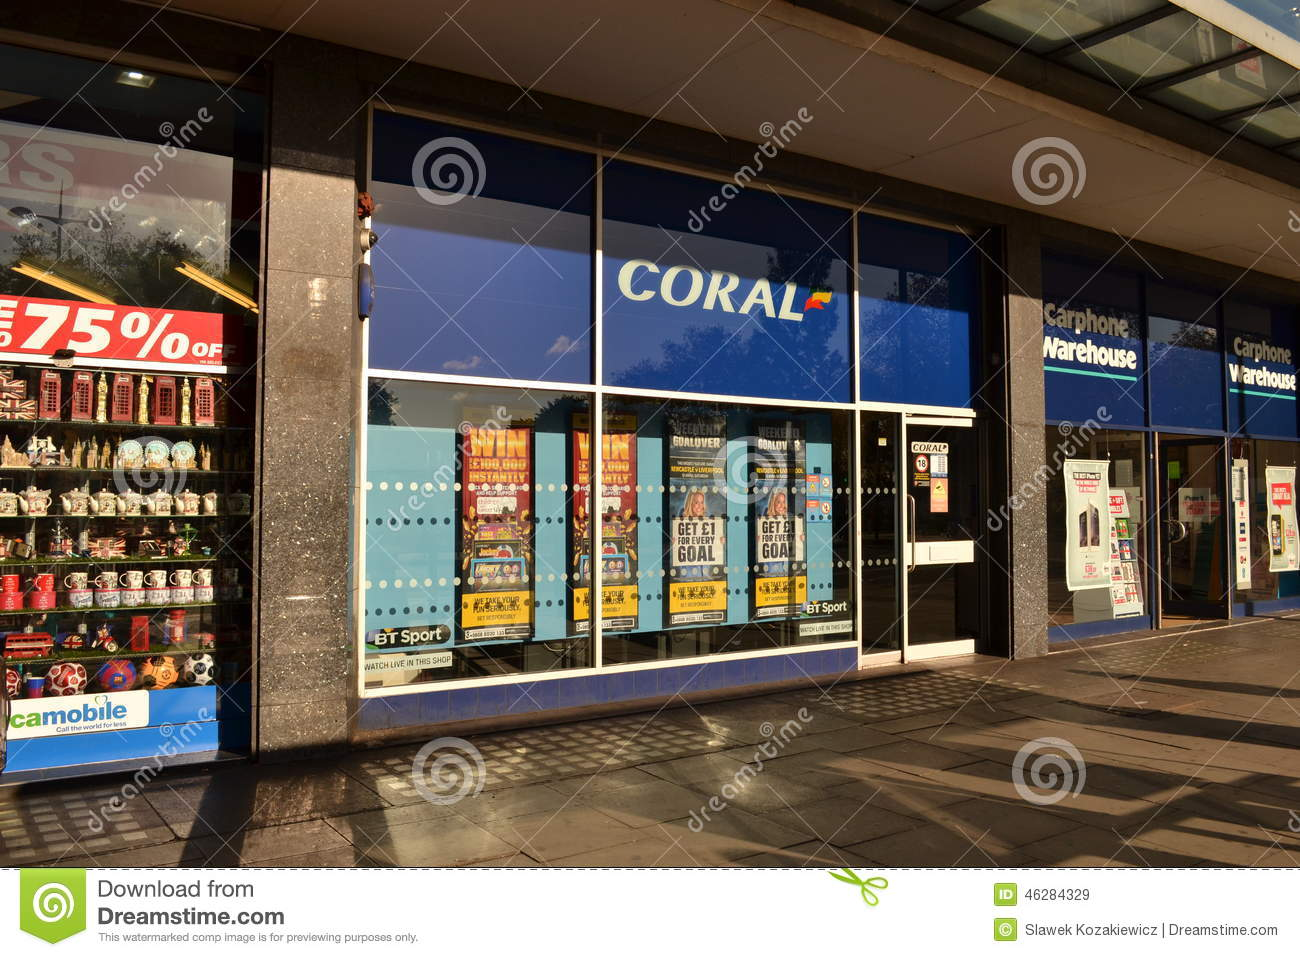 Coral betting shop 3 betting and 4 betting